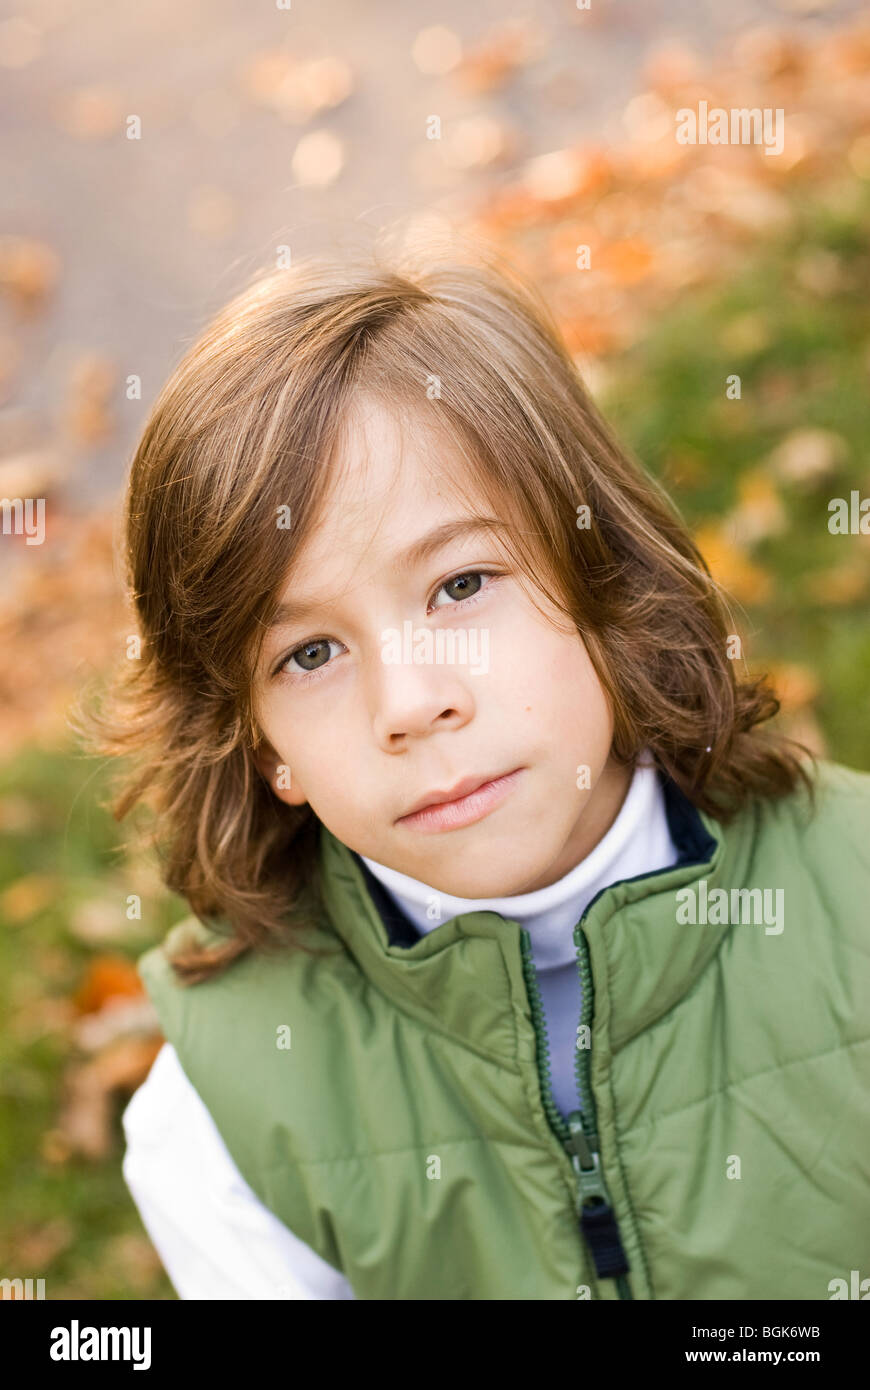 portrait of serious boy - Stock Image